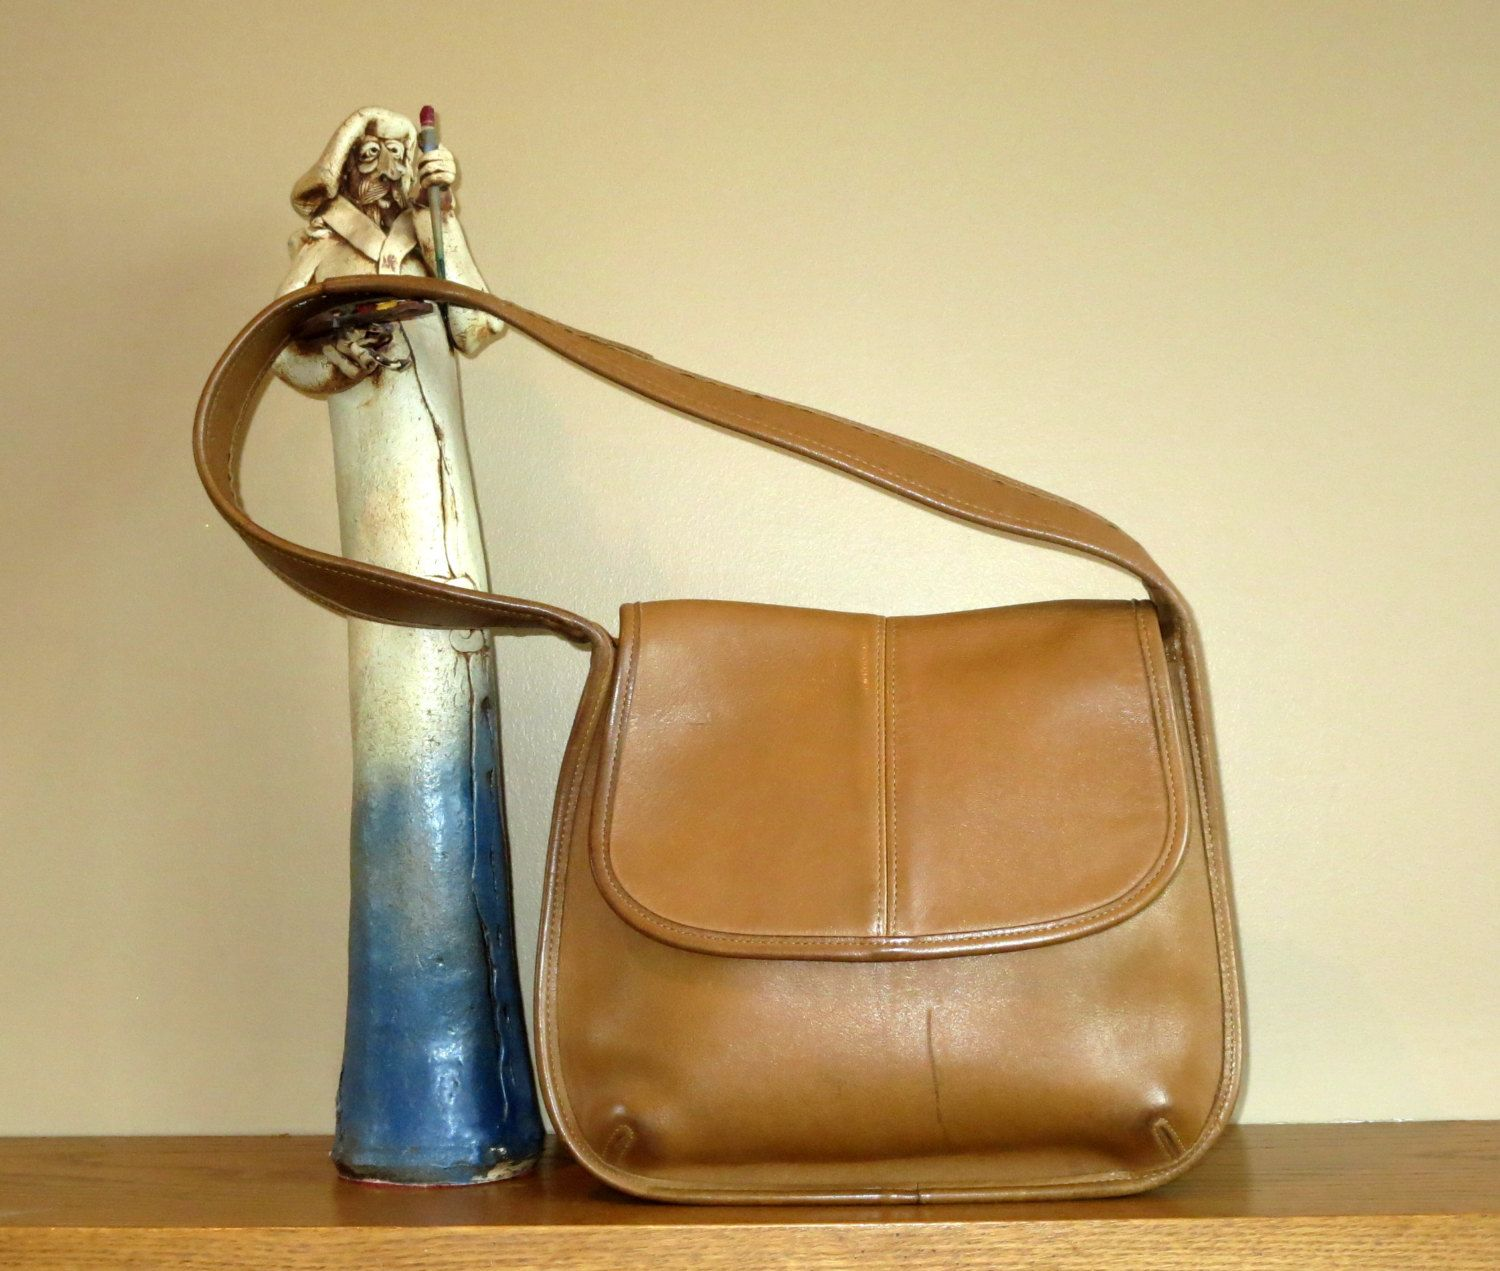 Coach Ergo Flap Tan Leather Shoulder Bag Style No. 9034- Made In U.S.A. by